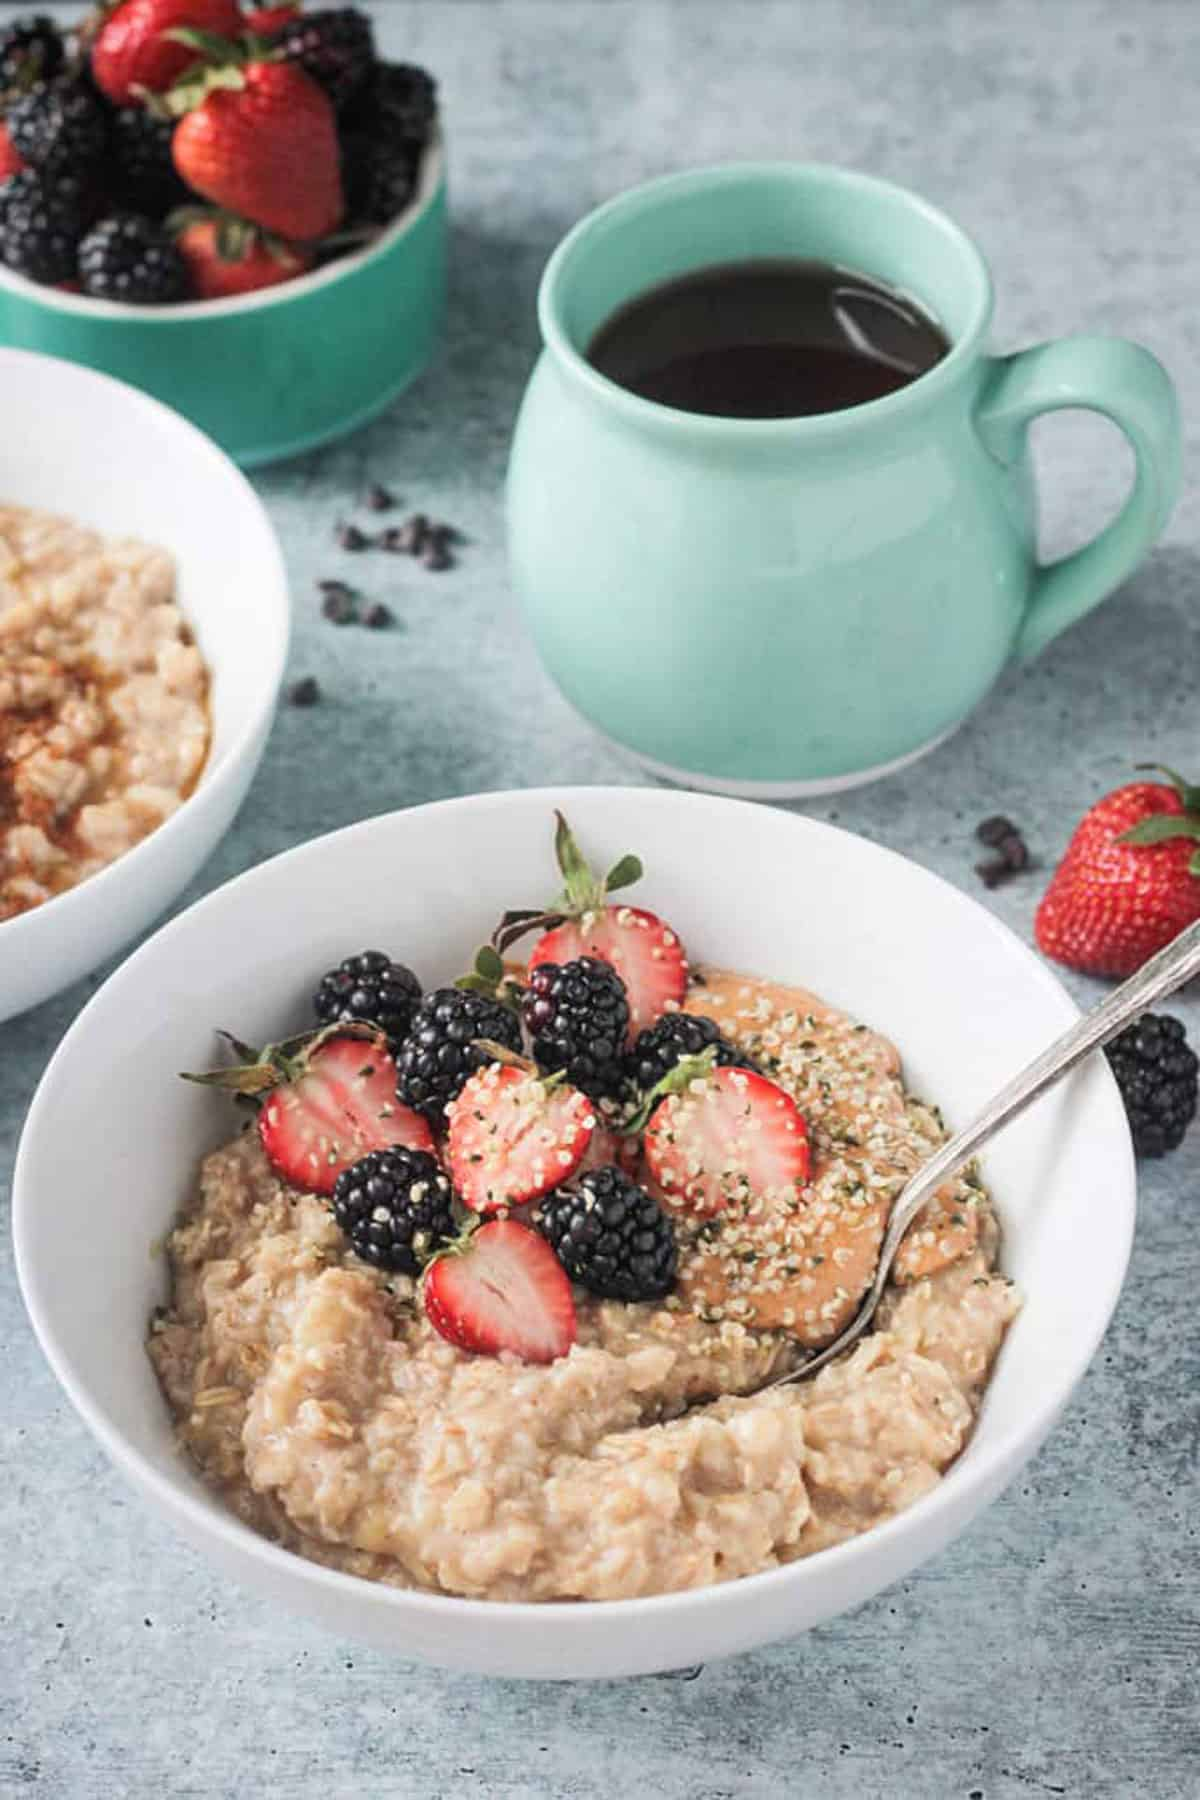 Easy Sweet Creamy Customizable Healthy Oatmeal Dairy Free